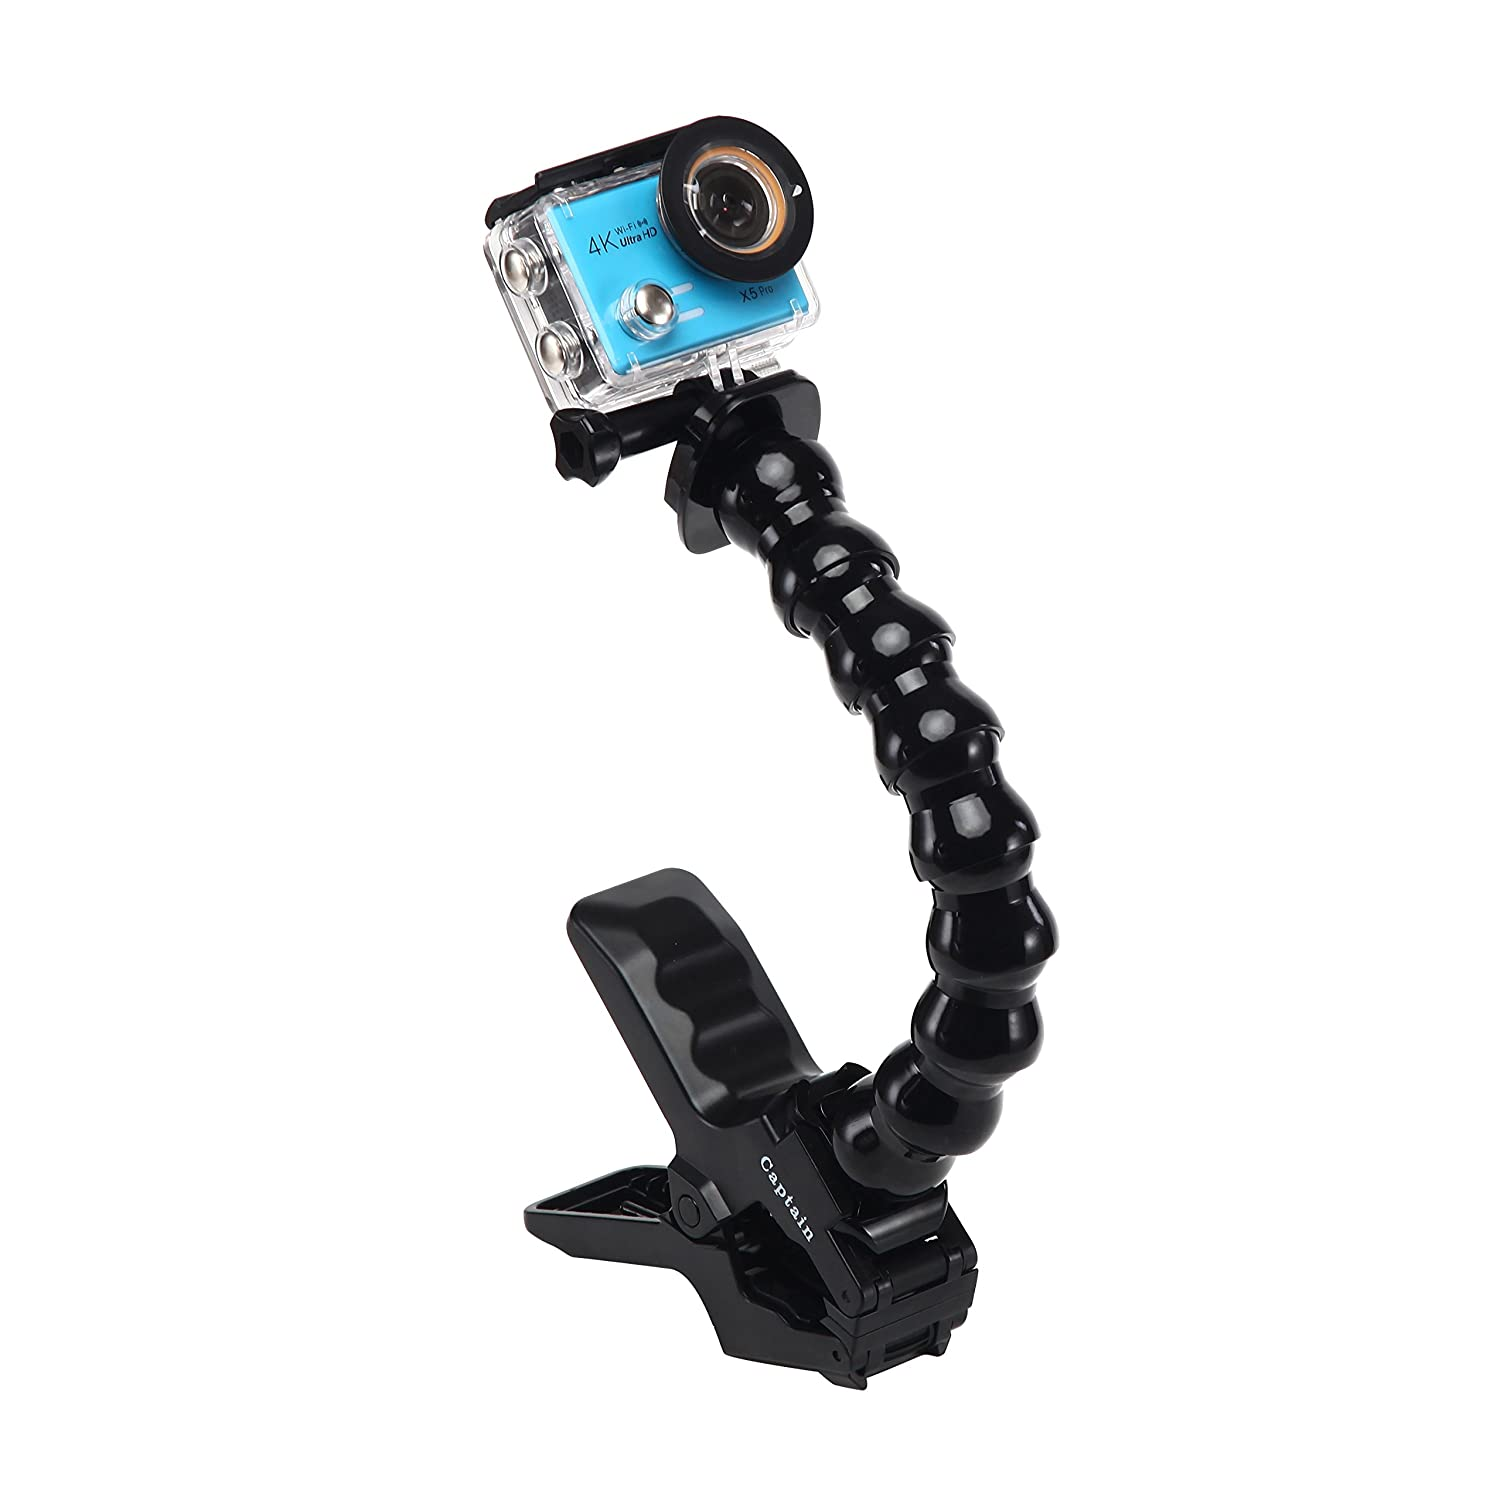 Adjustable Jaws Flex Clamp Mount with Adjustable Gooseneck for Gopro Hero 5 6 4 Accessories, Session, 3+, 3, 2, 1 & Sport Video Cameras By Captain